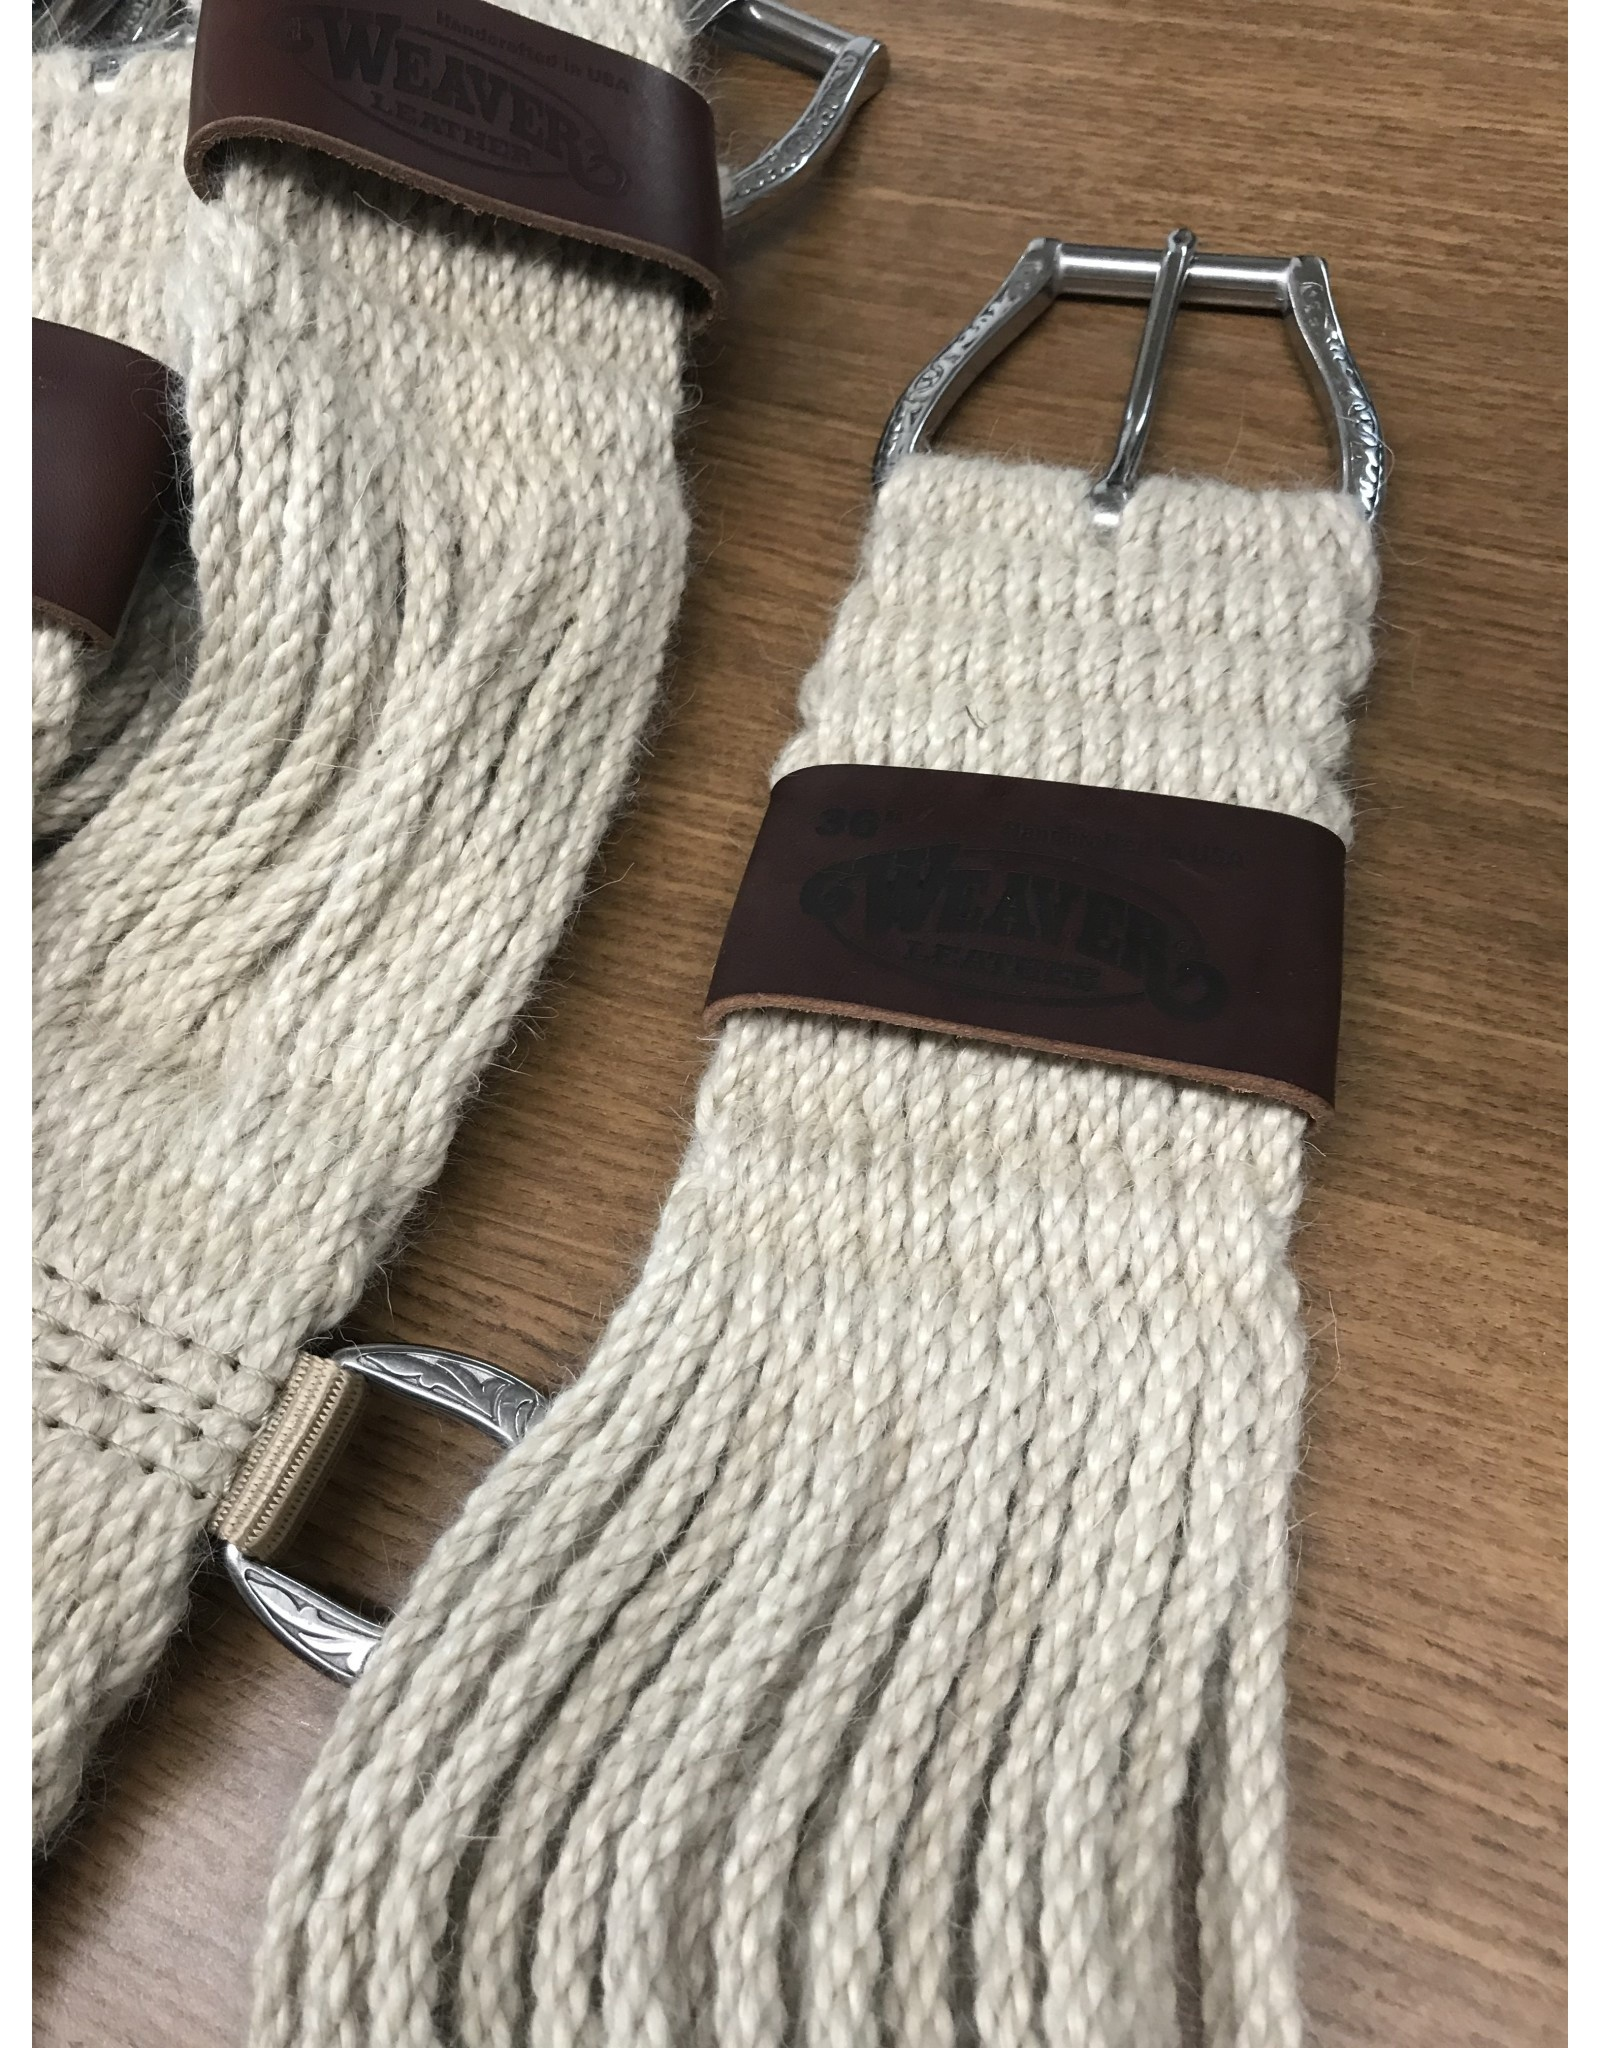 CIN* 100% Mohair Straight Cinch 32  AAAA*P (fancy roller buckles and one side leather cinch holder)35-2435